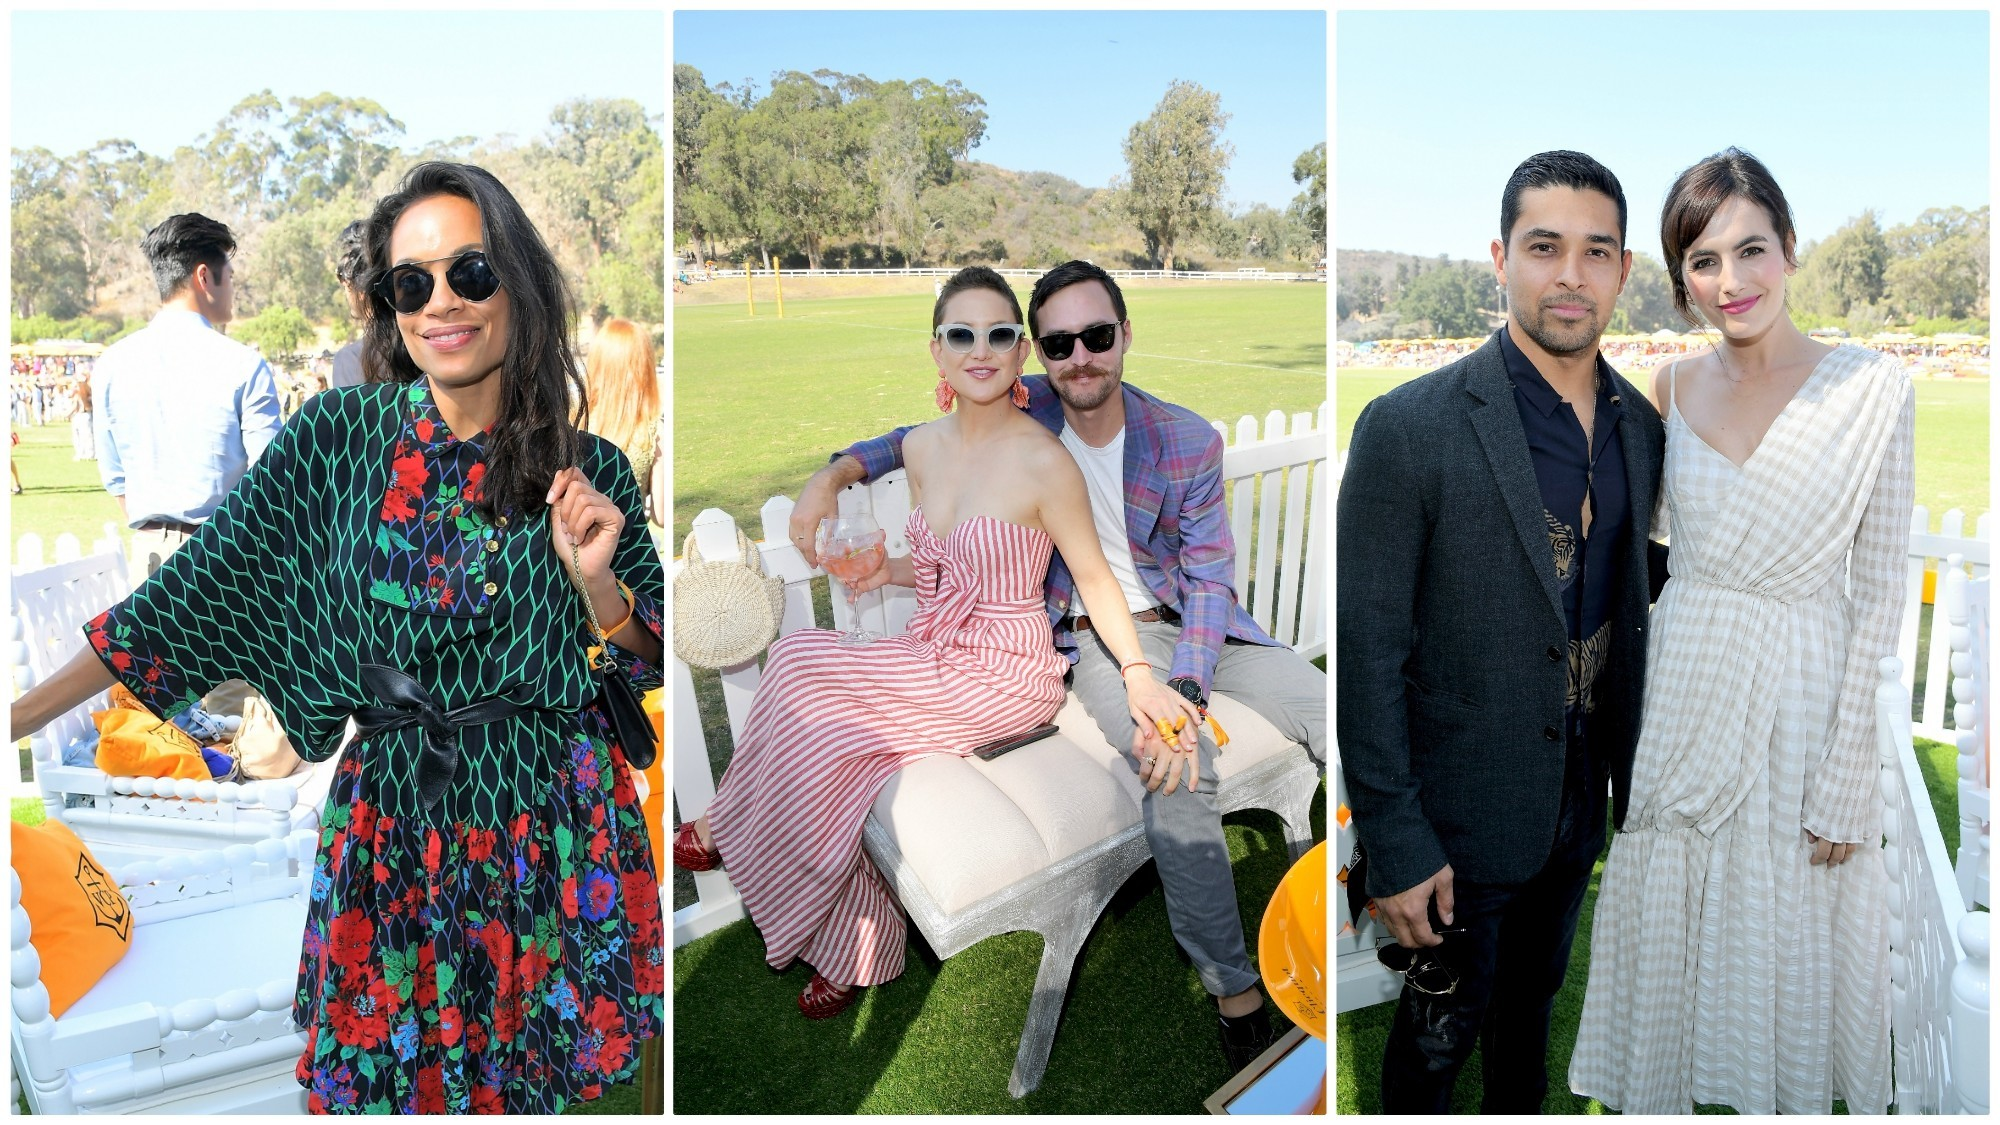 Rosario Dawson, left, Kate Hudson and Danny Fujikawa, and Wilmer Valderrama and Camilla Belle on the polo grounds for the annual Veuve Clicquot Polo Classic event.